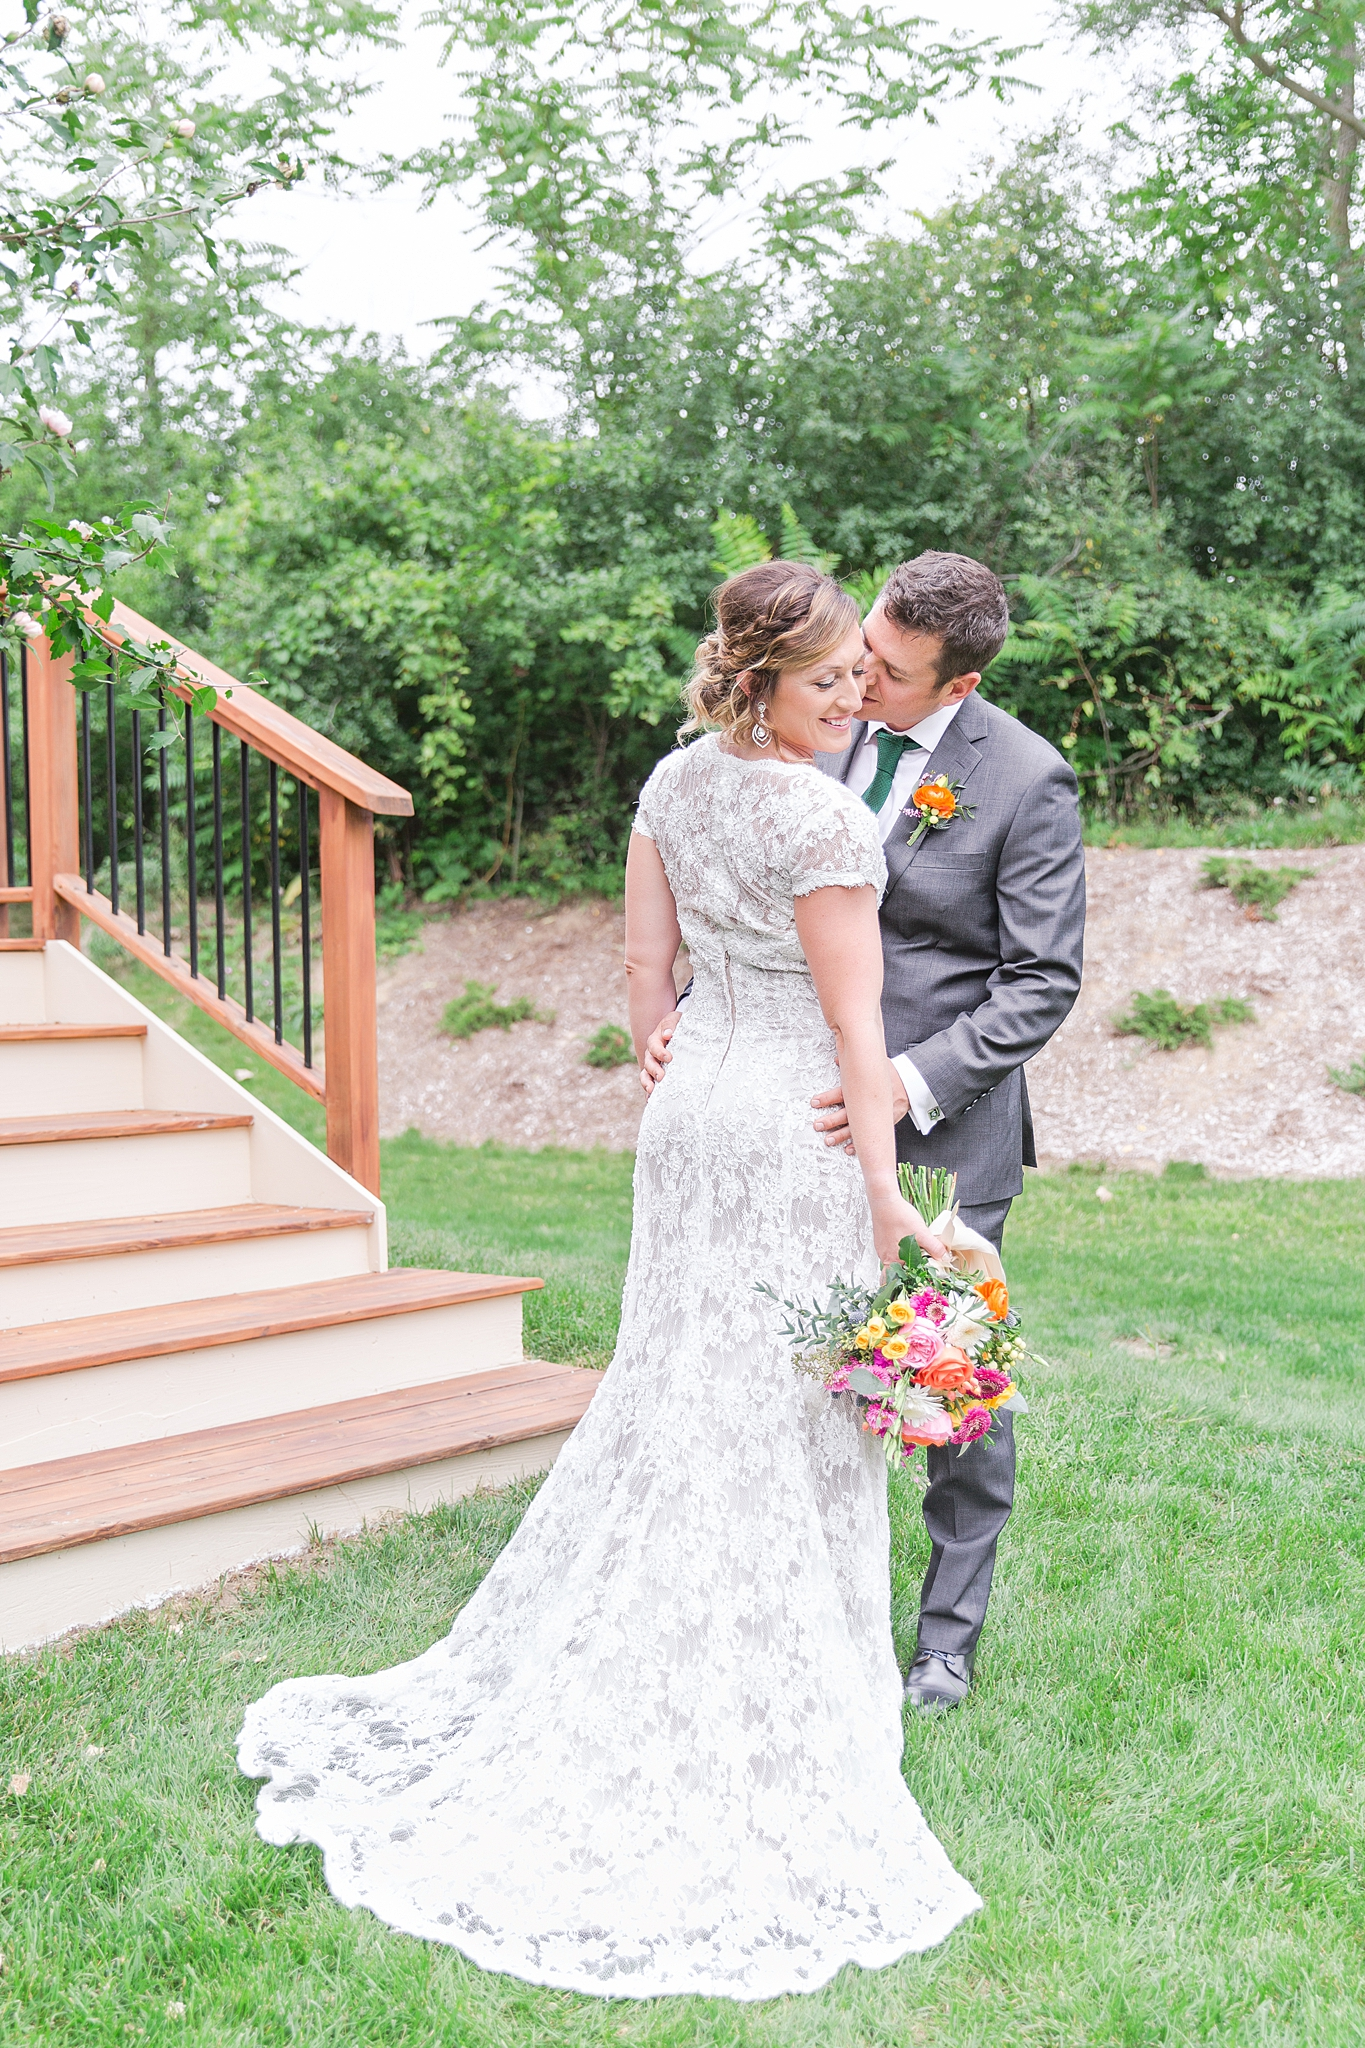 private-lakefront-estate-wedding-photography-in-ann-arbor-michigan-by-courtney-carolyn-photography_0012.jpg